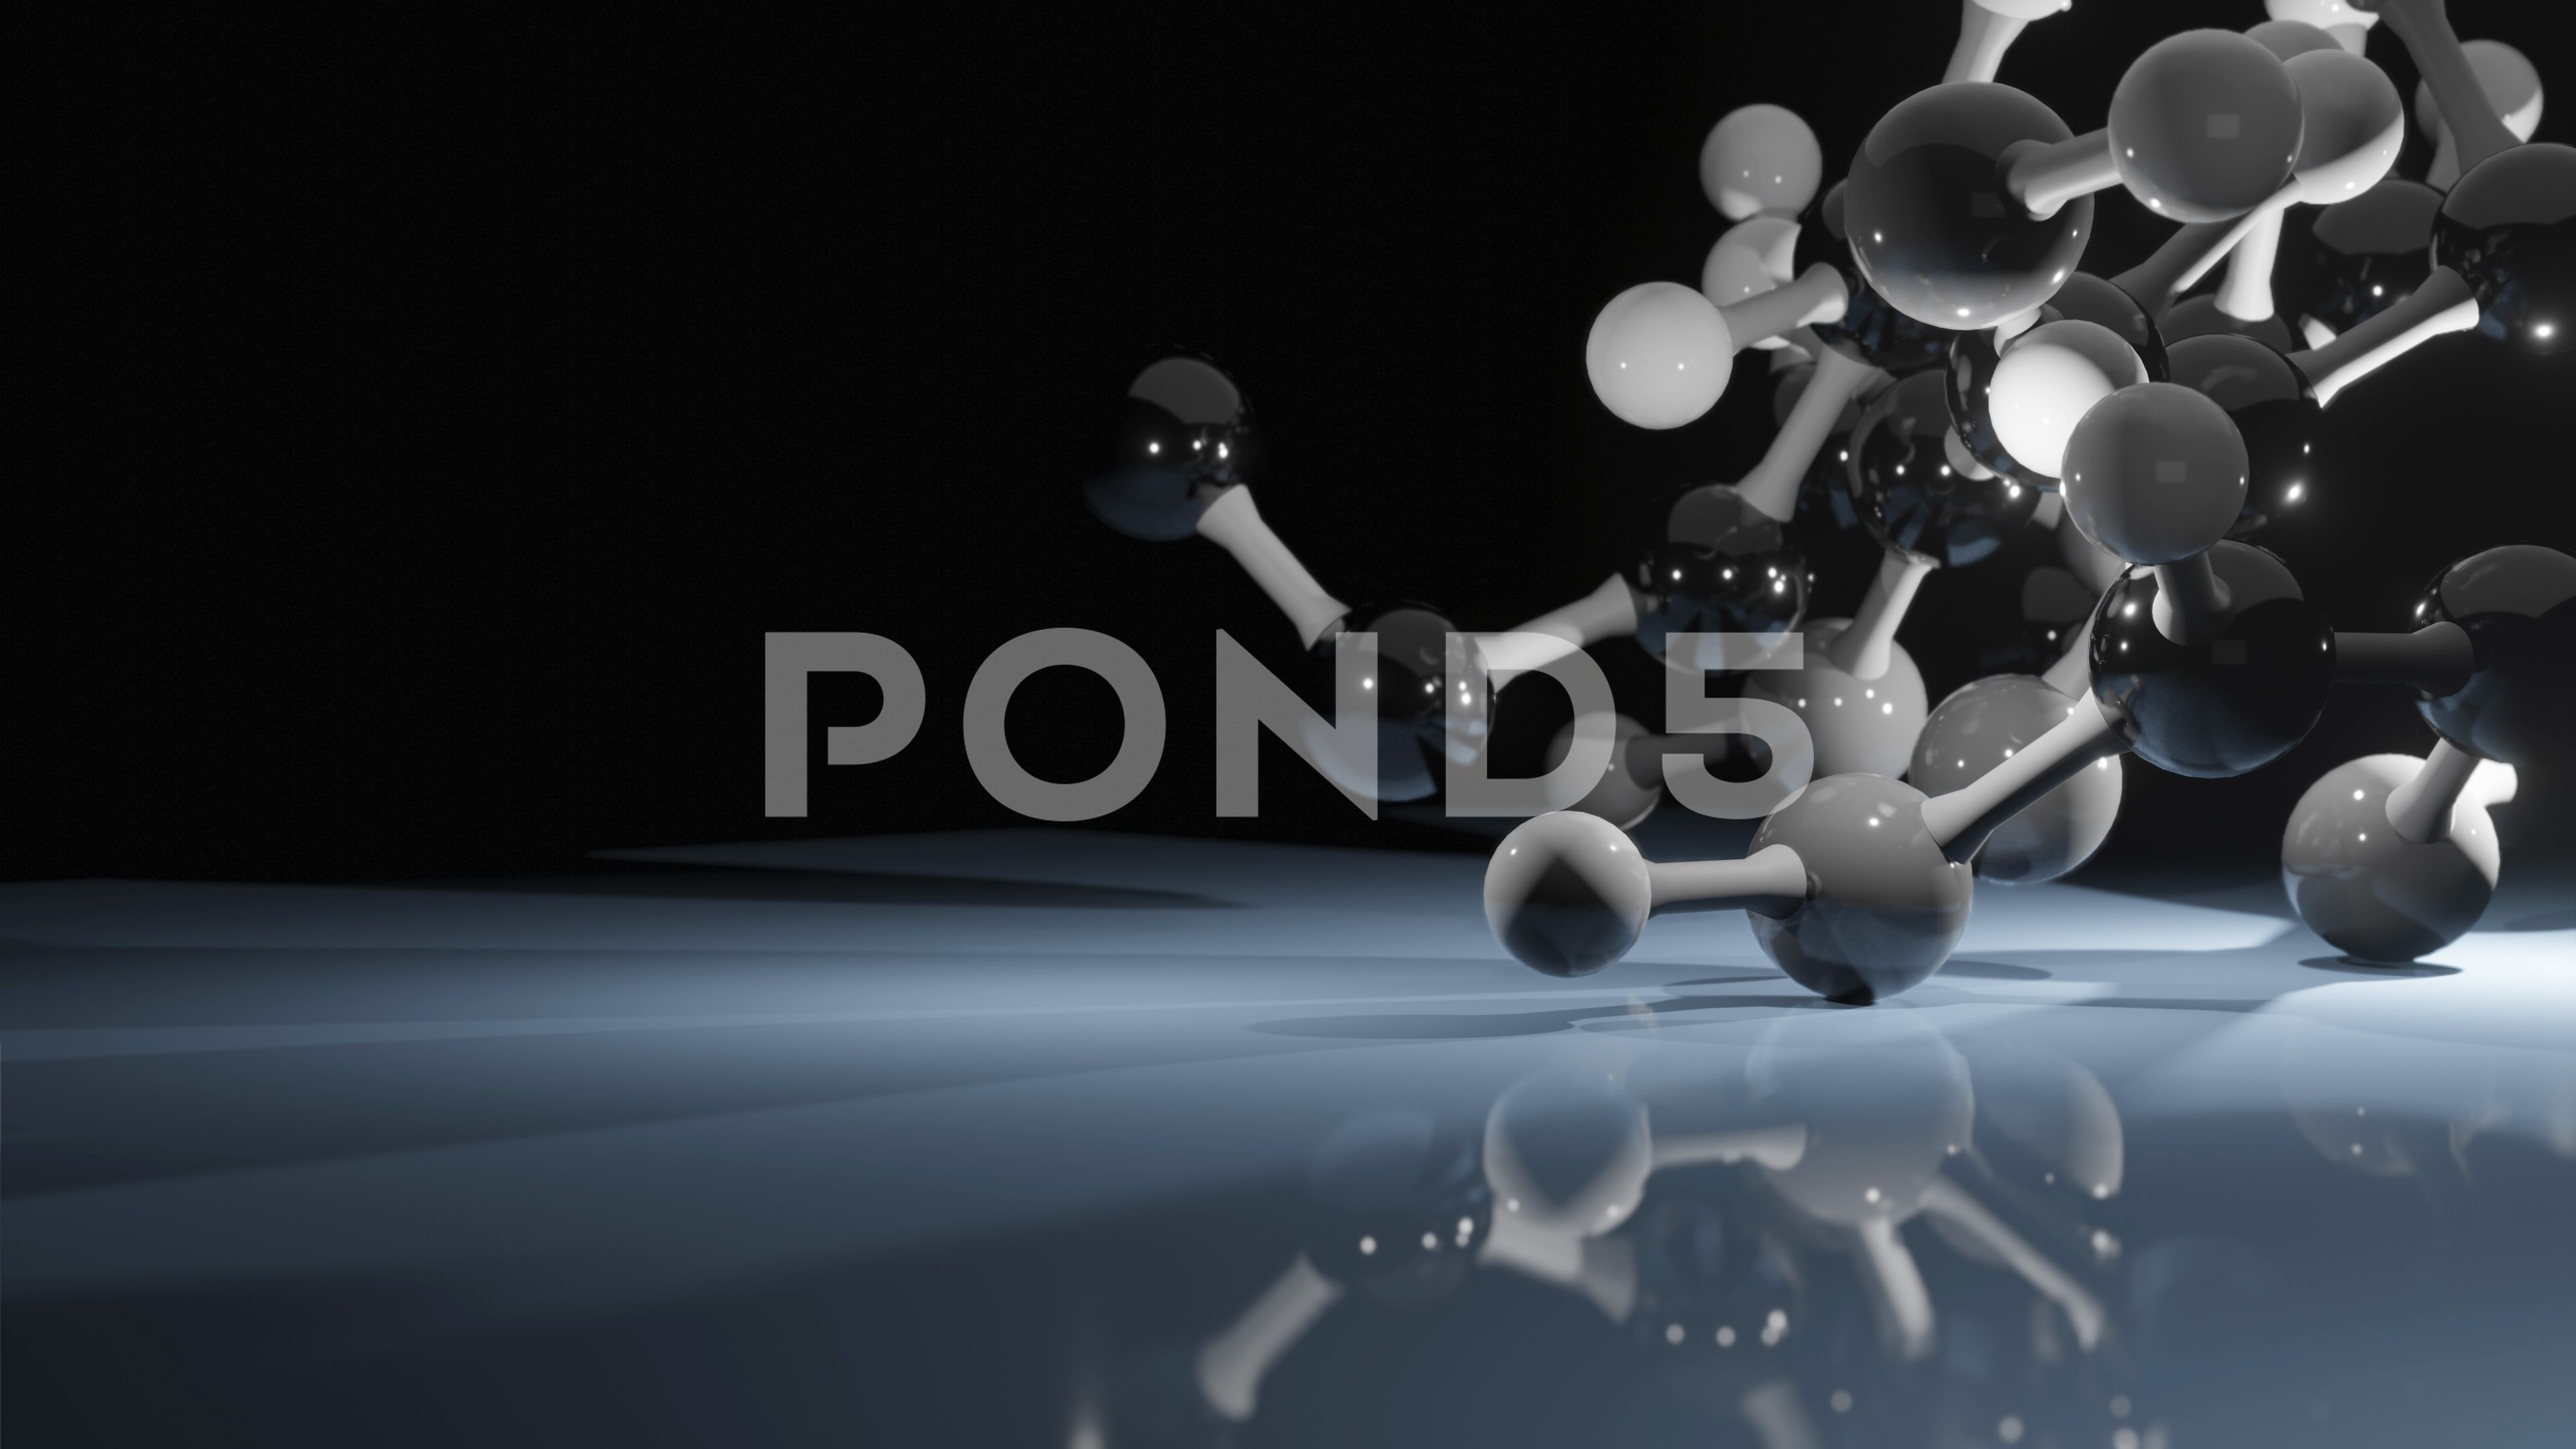 Physics Molecule Model Science Or Medical Background With